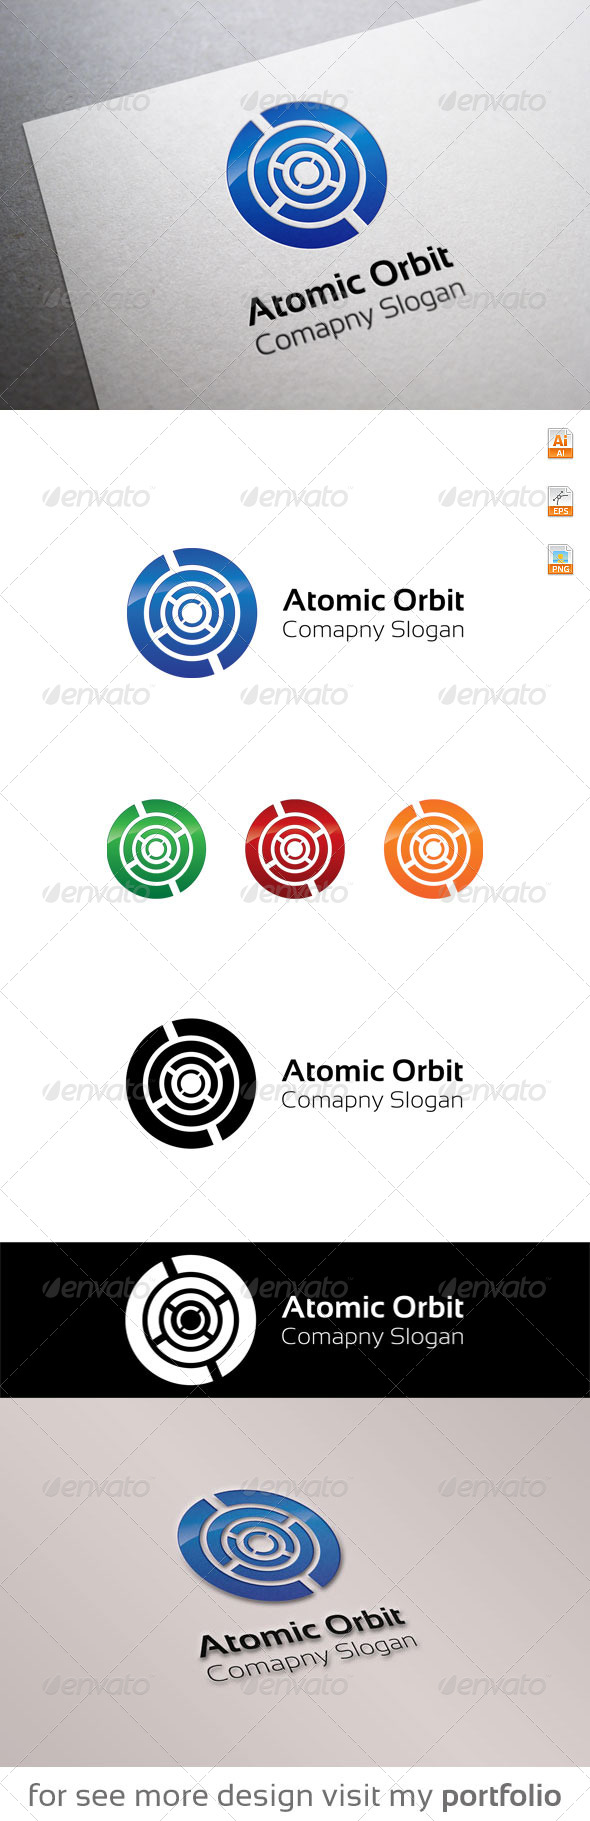 GraphicRiver Atomic Orbit logo 8679674